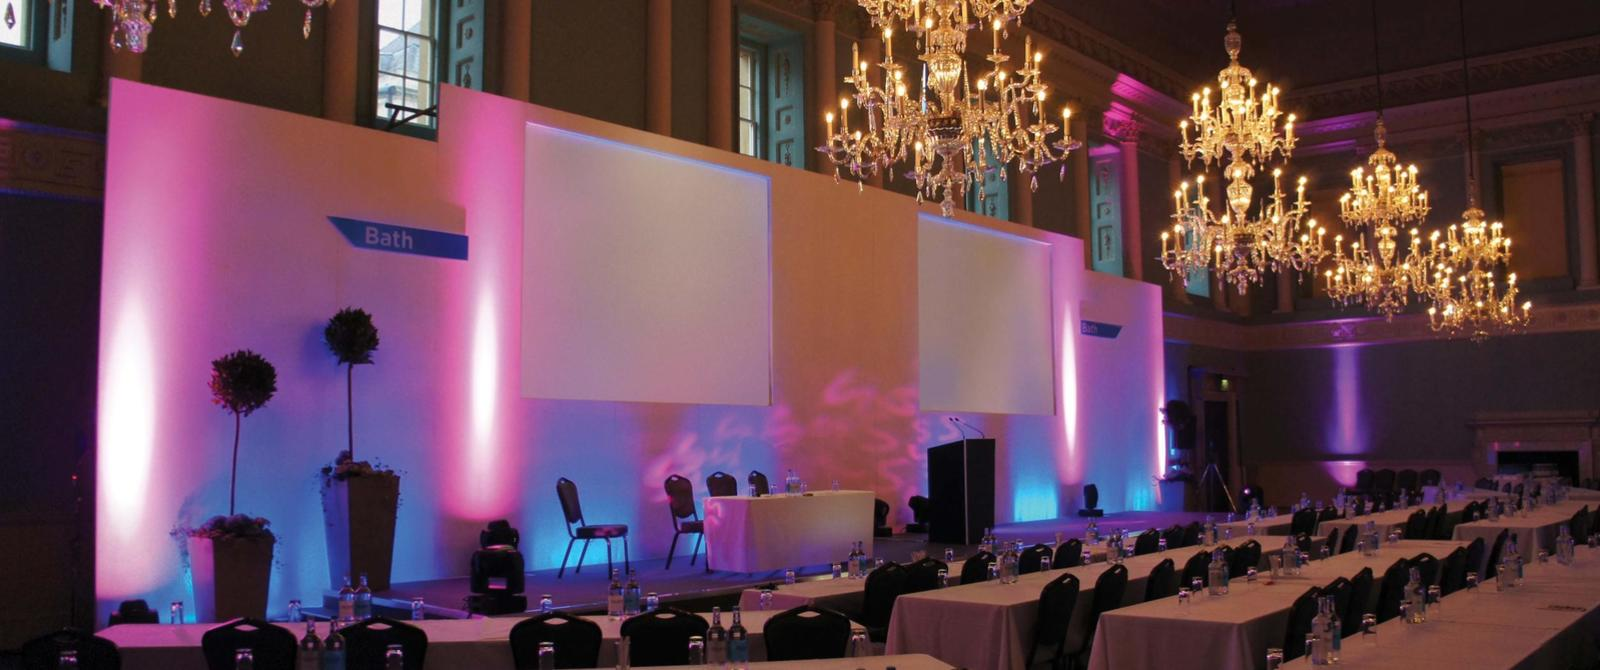 image: Conference in the Ball Room at the Assembly Rooms